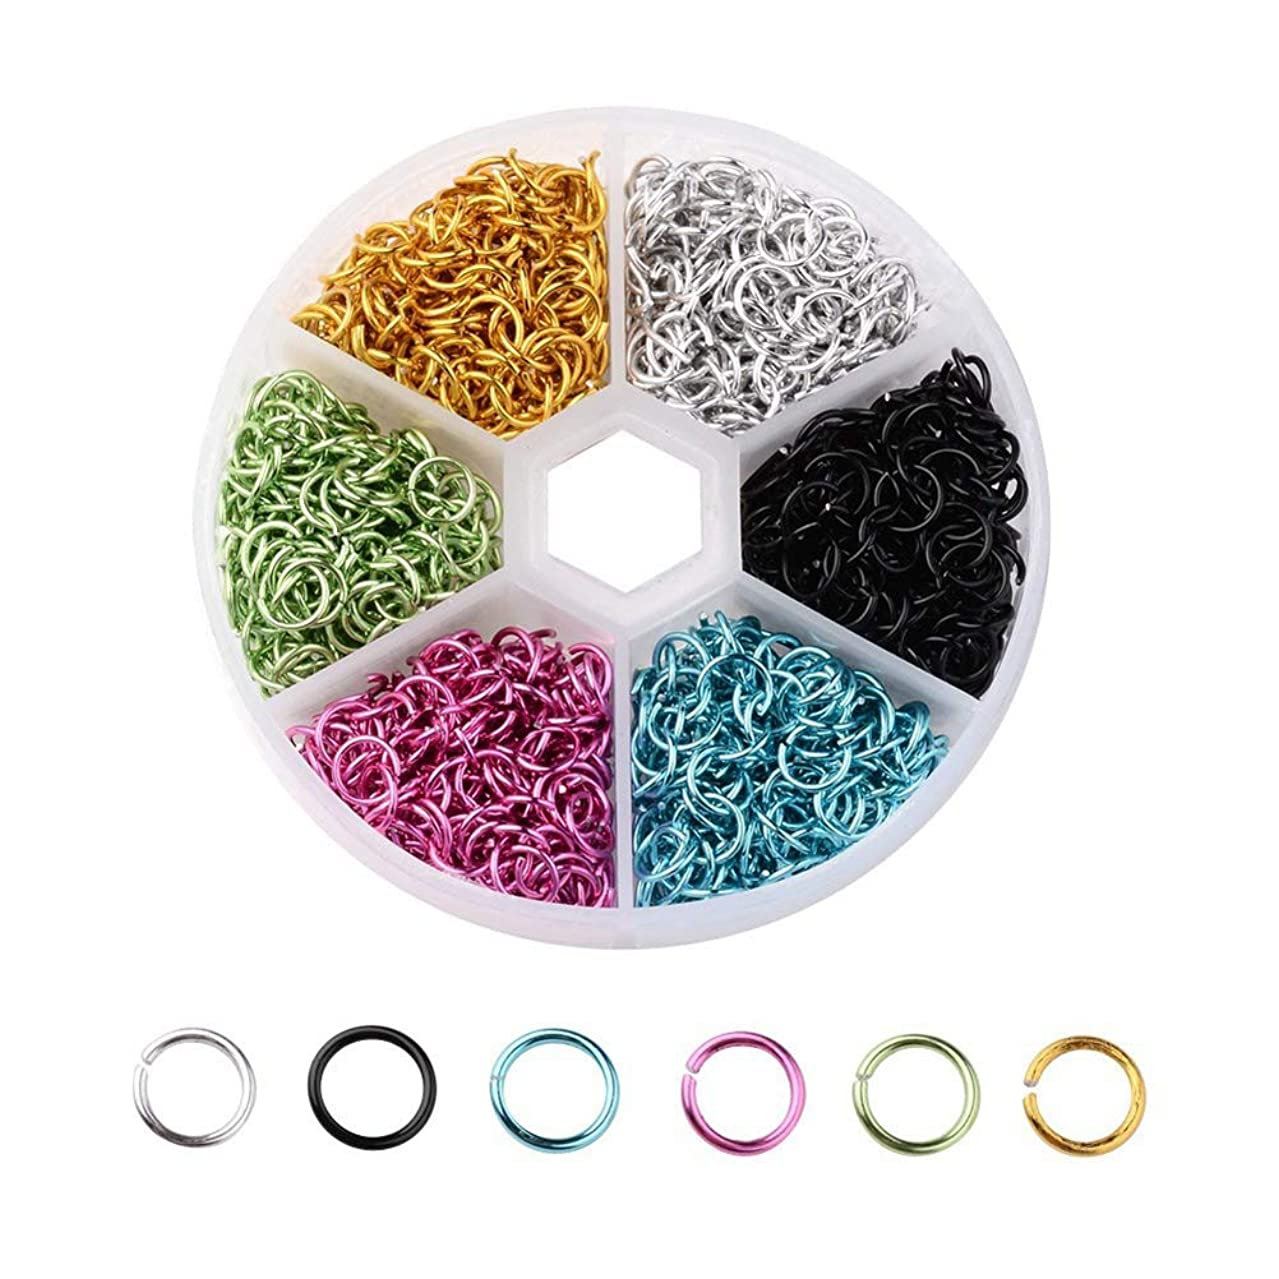 SUPVOX 1080pcs Open Jump Ring for DIY Jewelry Making Accessories Connector Mixed Color